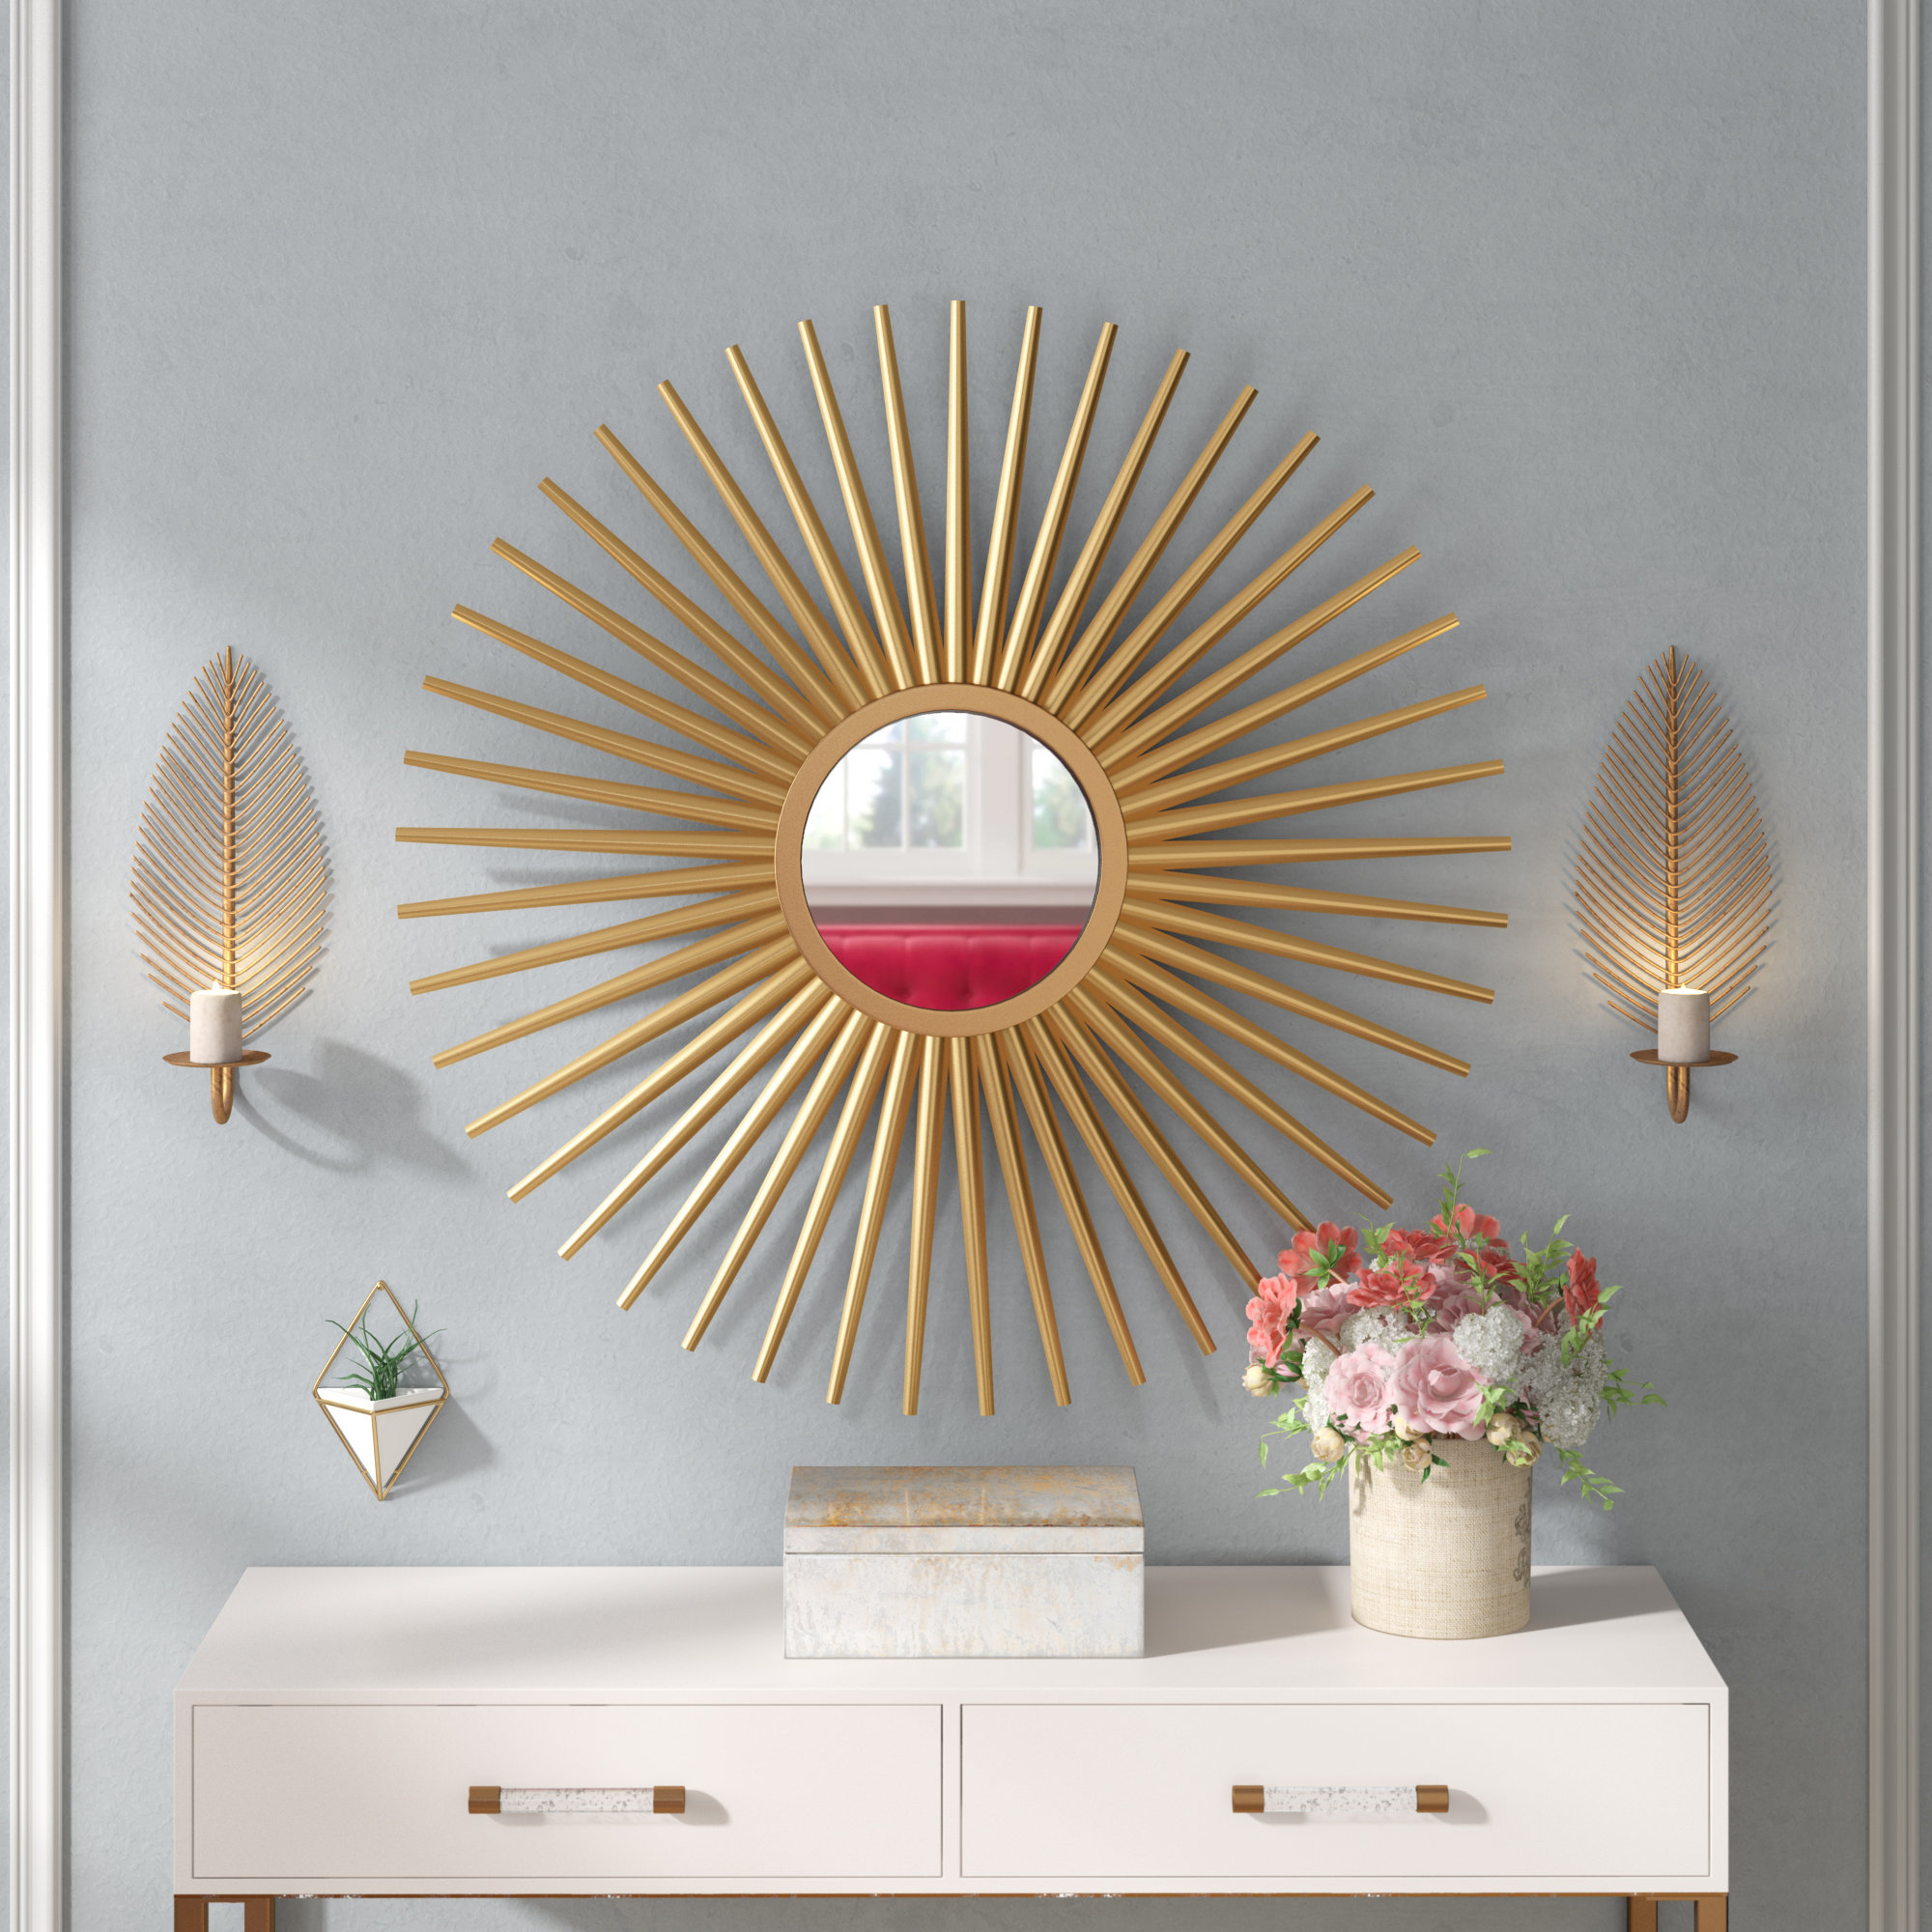 Sunburst Wall Mirror intended for Starburst Wall Decor By Willa Arlo Interiors (Image 19 of 30)